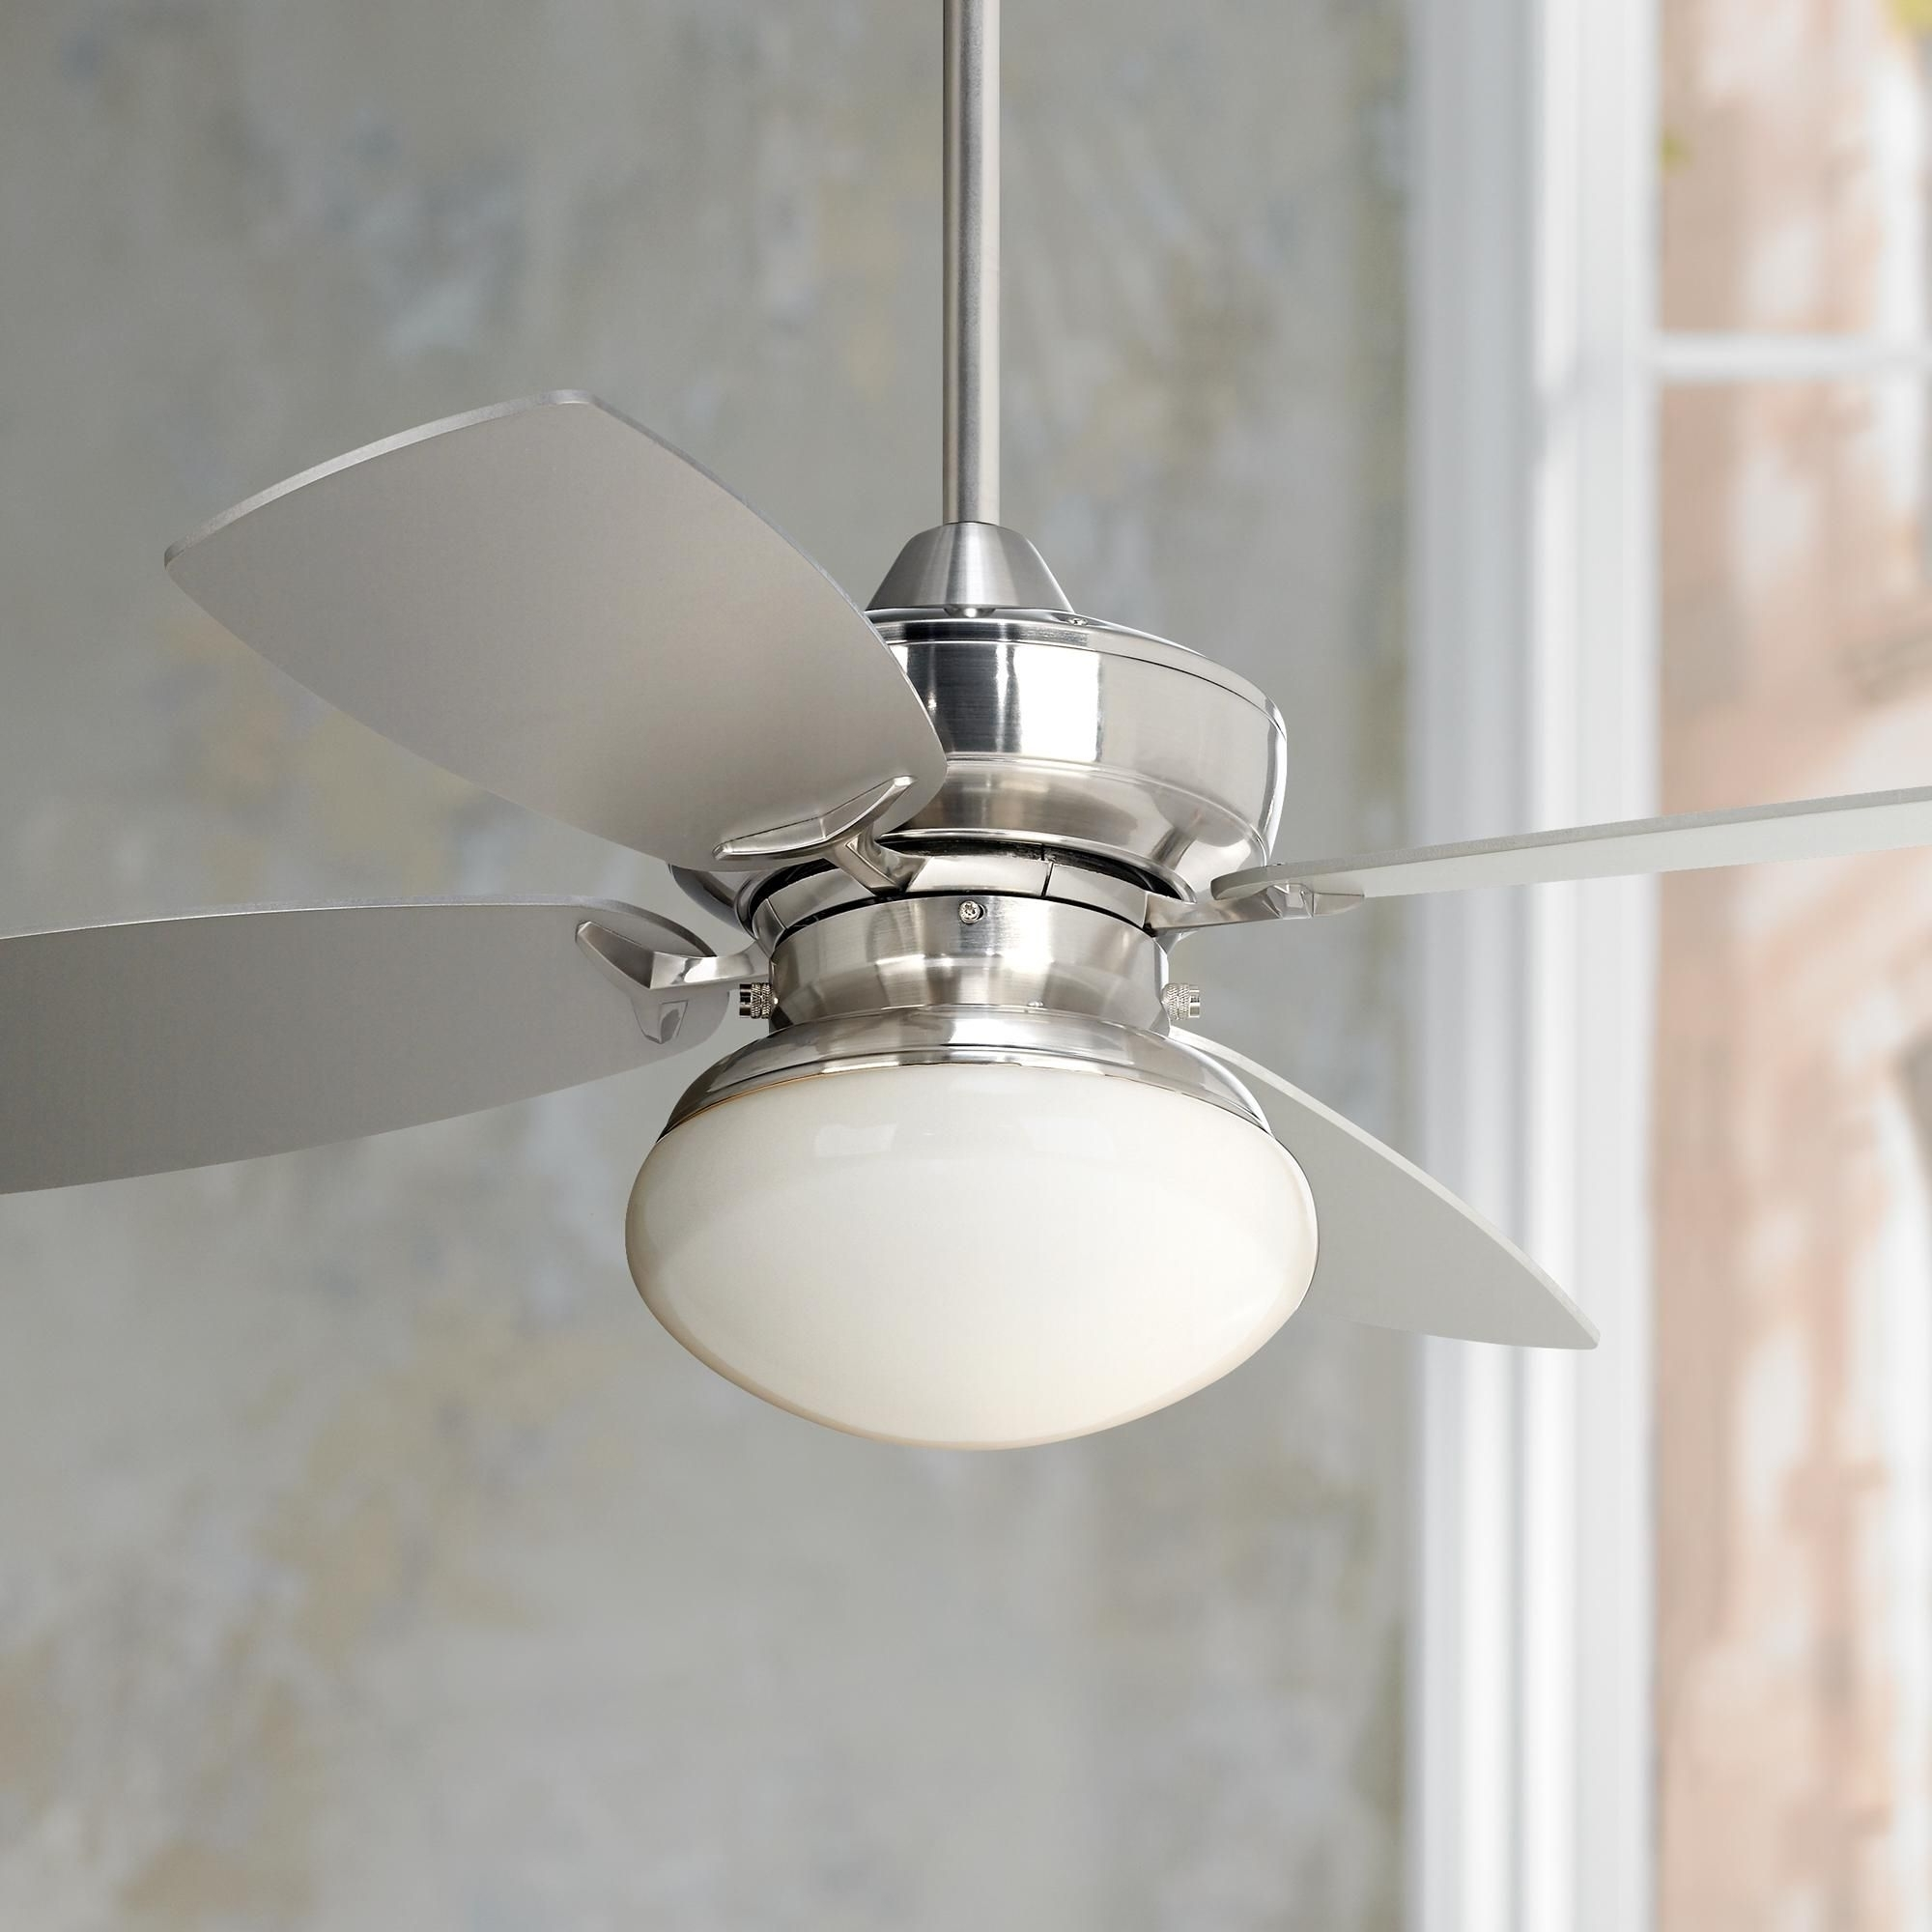 "Casa Vieja Outdoor Ceiling Fans With Regard To Recent 36"" Casa Vieja Outlook Brushed Nickel Ceiling Fan (View 10 of 20)"